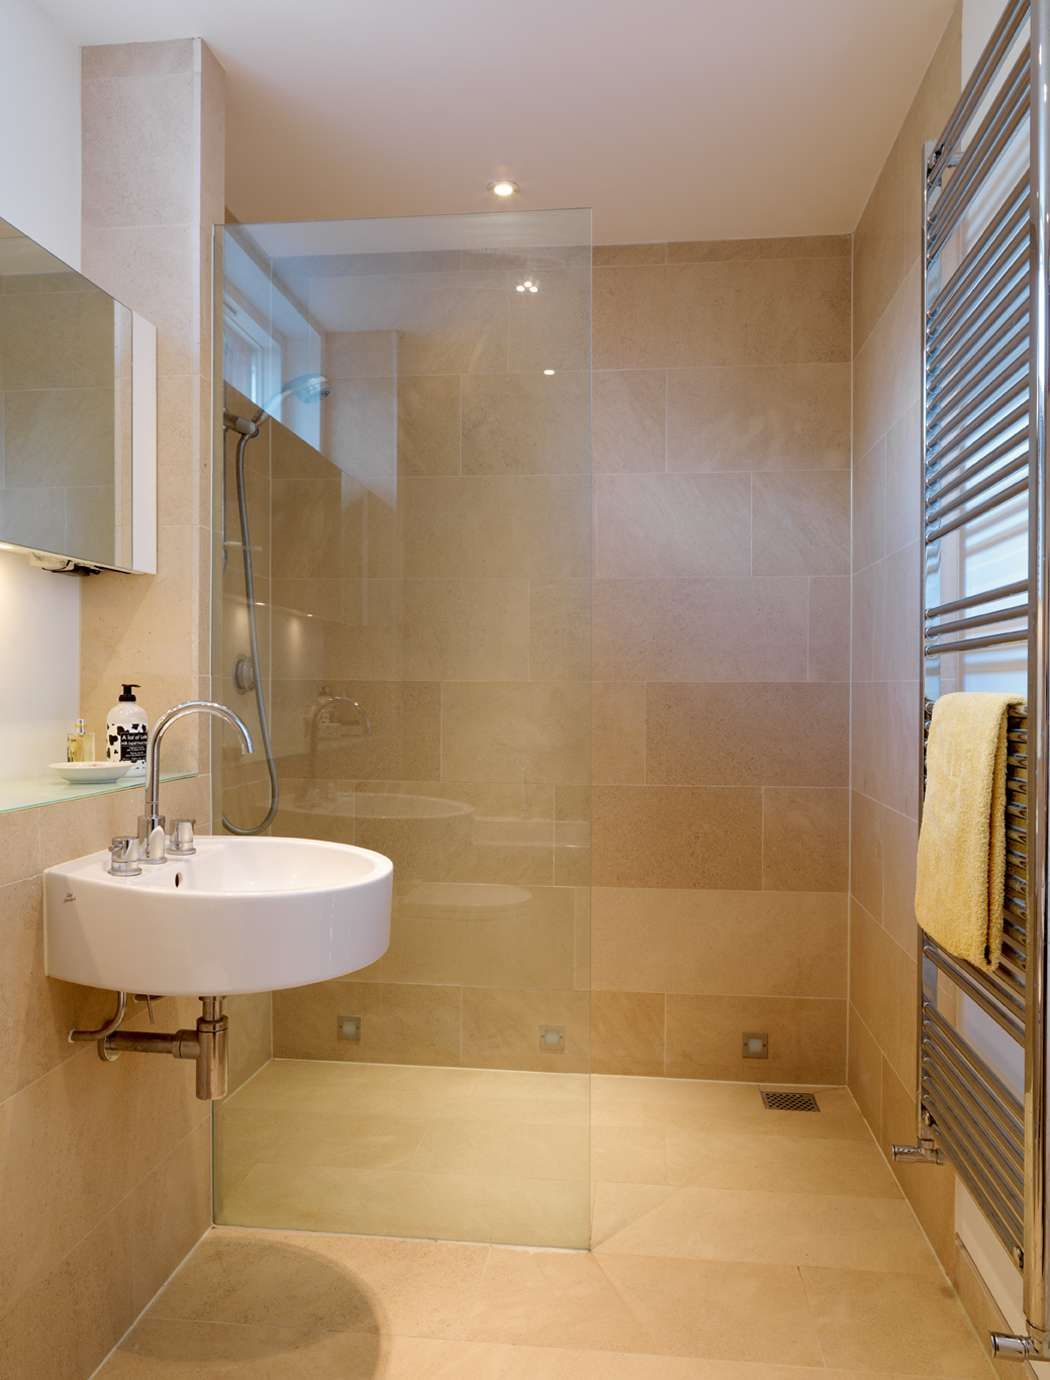 25 Bathroom Ideas For Small Spaces | Bathroom layout ...